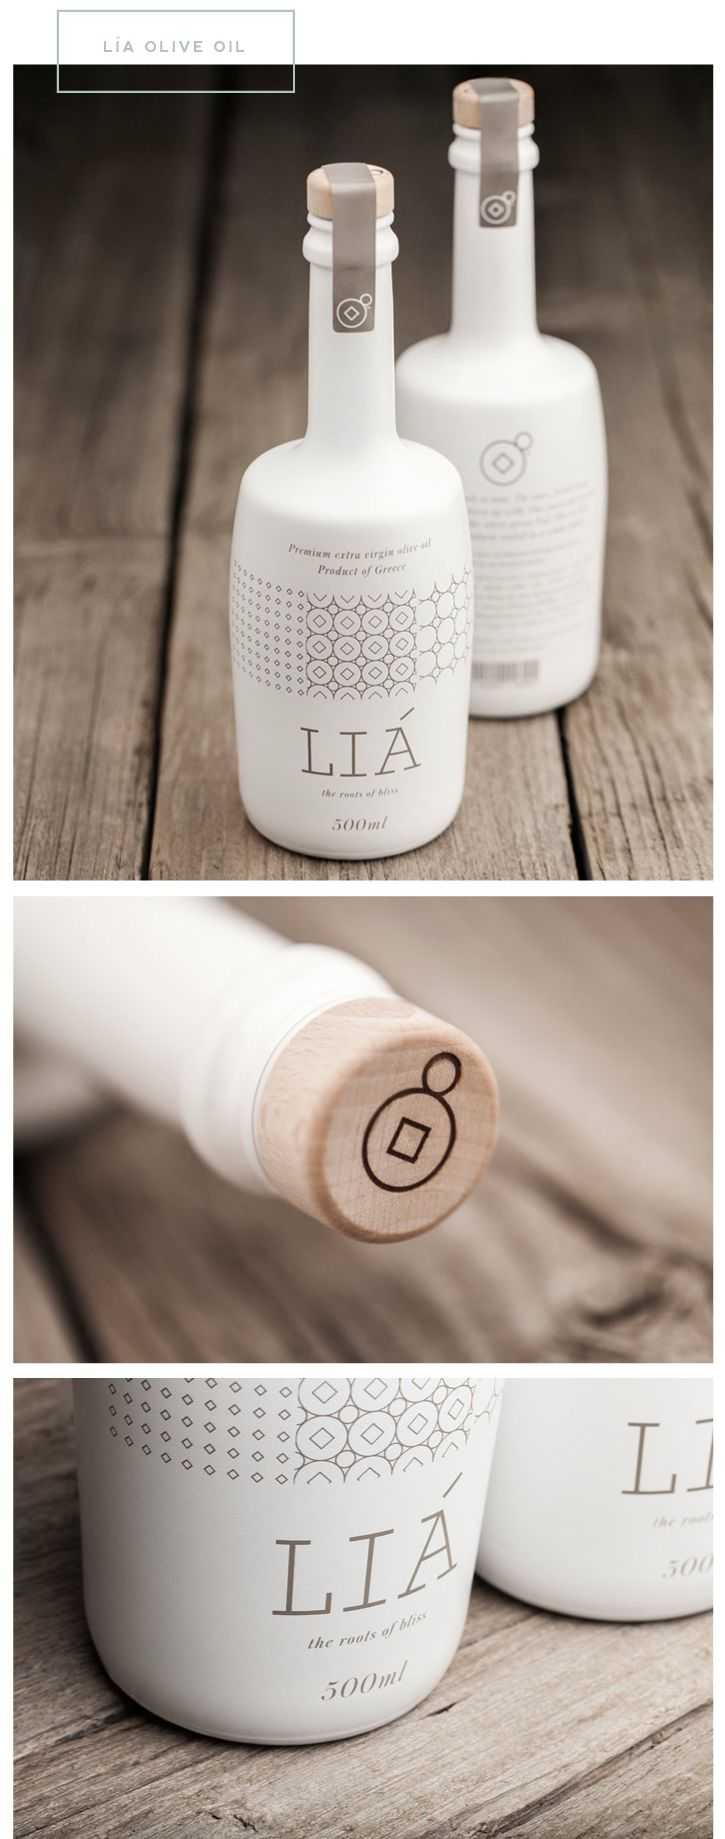 This is great example of presentation. I believe the circle dot symbol is something of a logo. It's shown on the illustration pattern and beveled into the cork. See how the wood cork is complemented with the wood surface in the background. Good consistency.